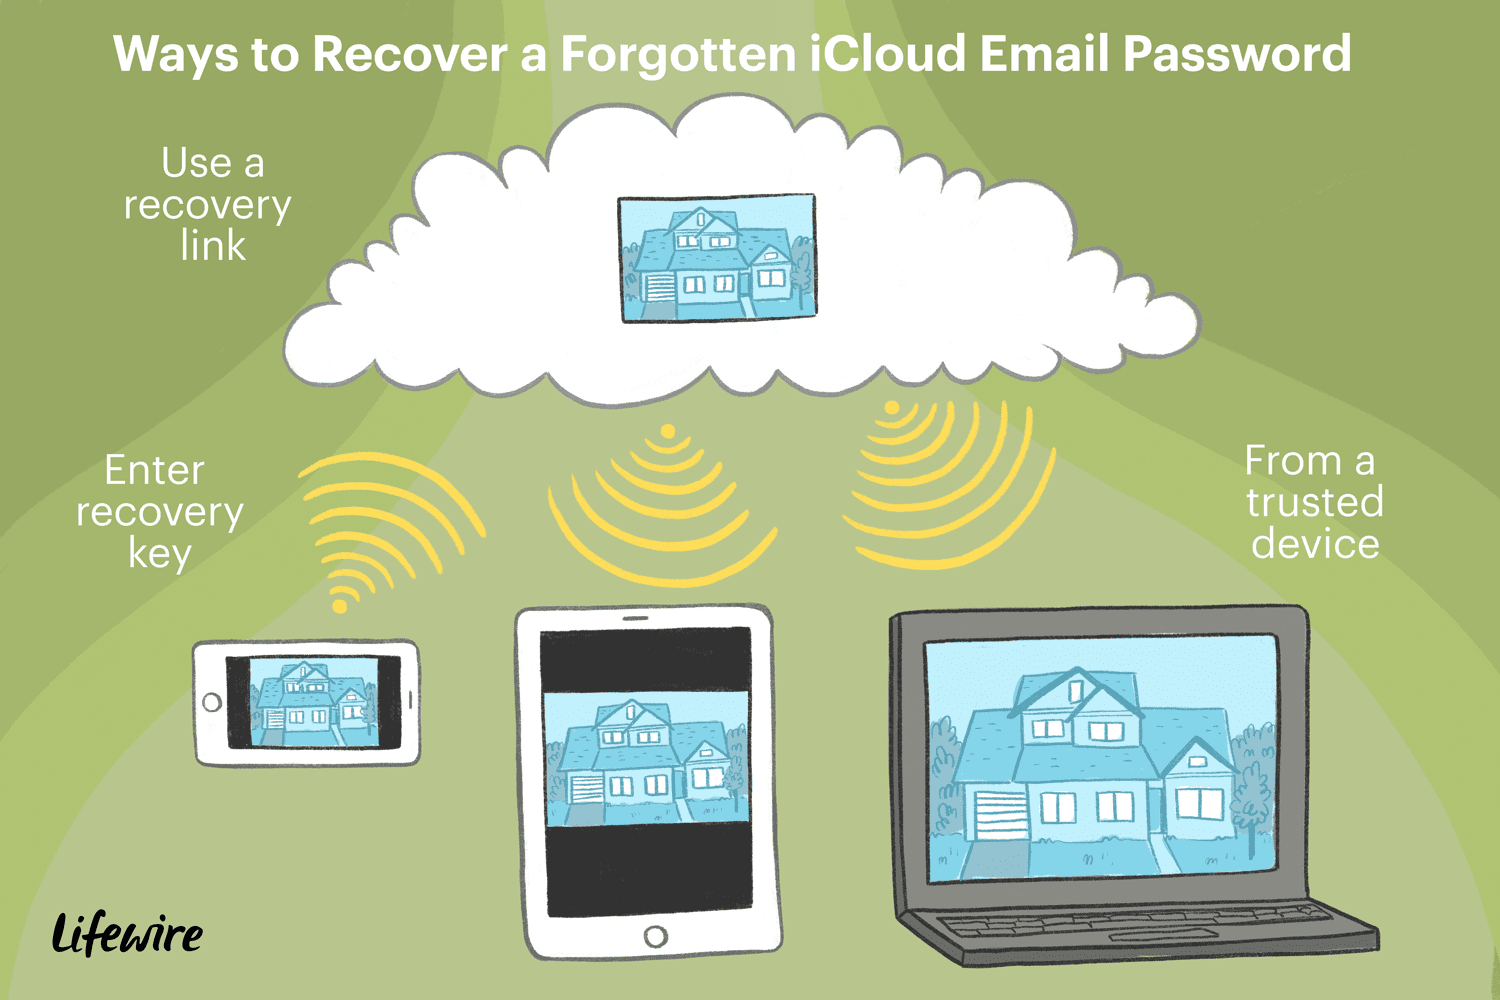 How to Recover a Forgotten iCloud Mail Password